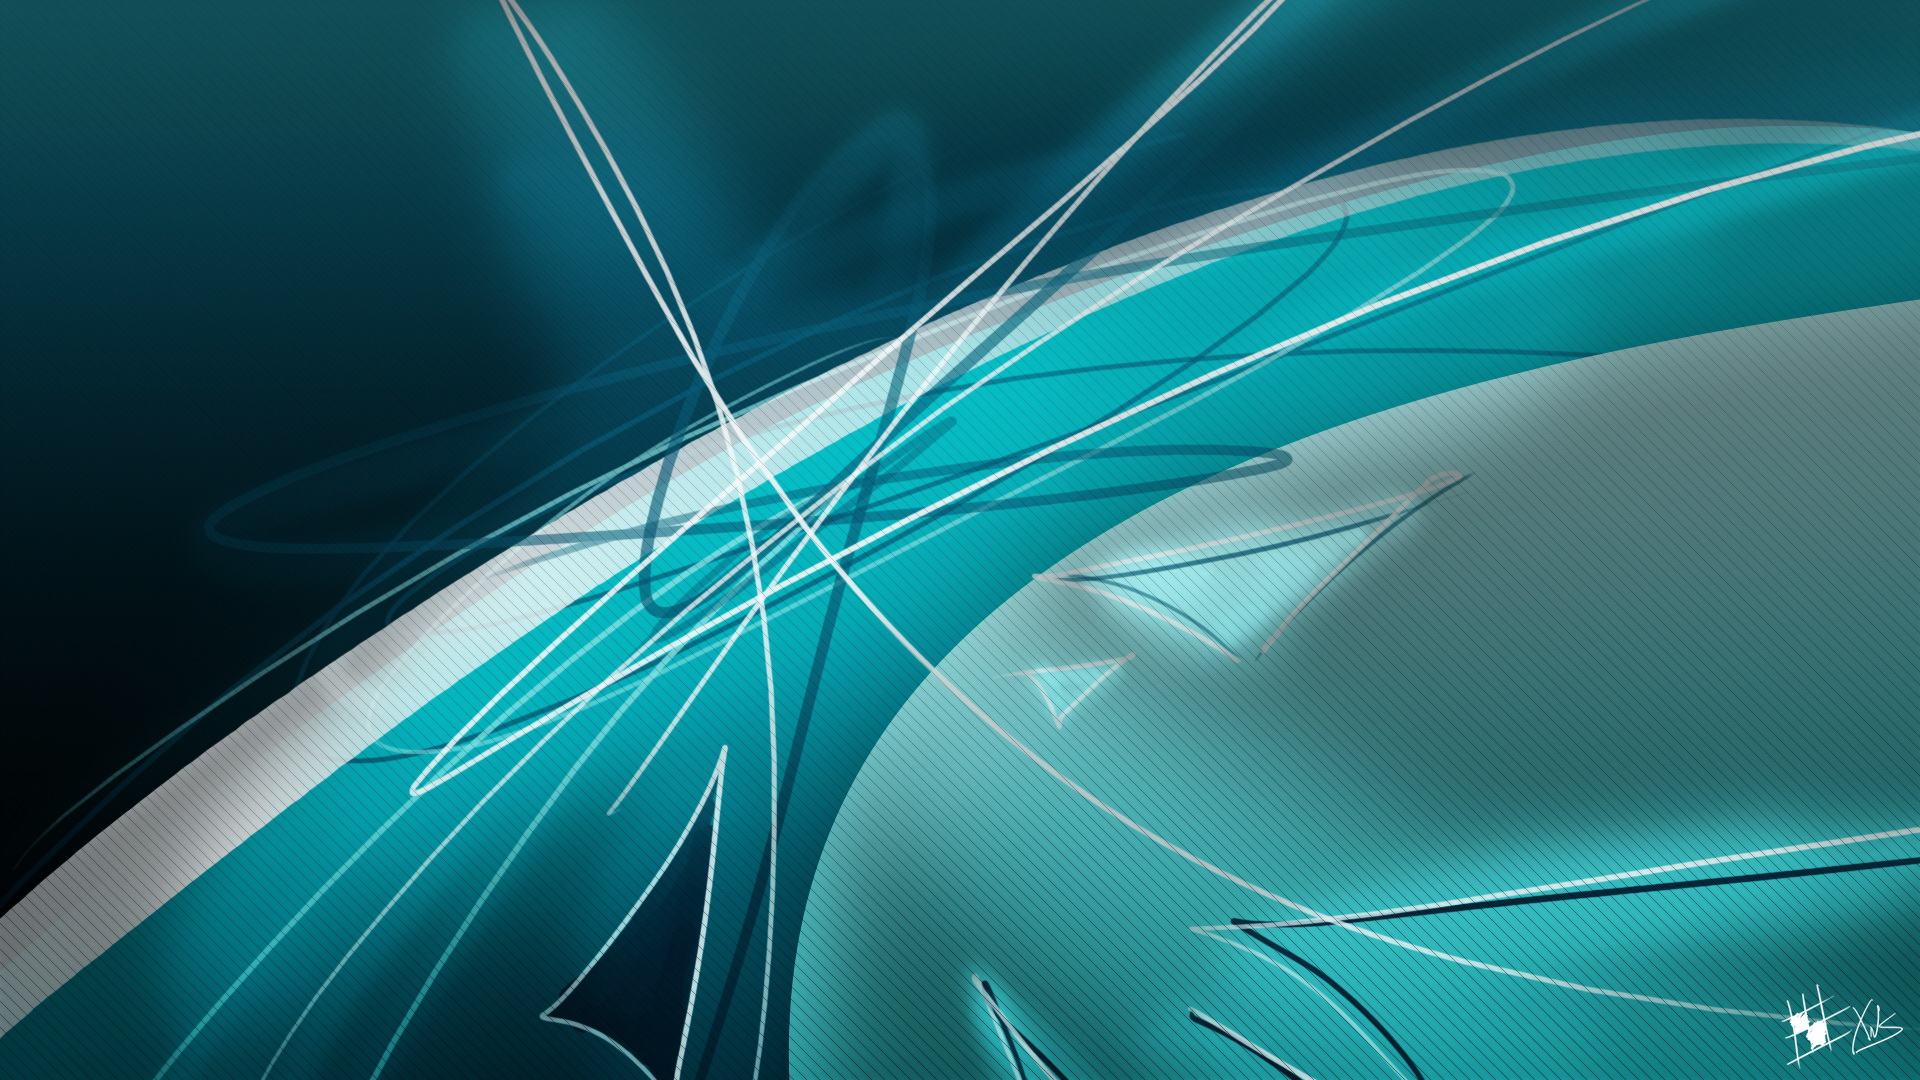 turquoise abstract computer wallpaper - photo #9